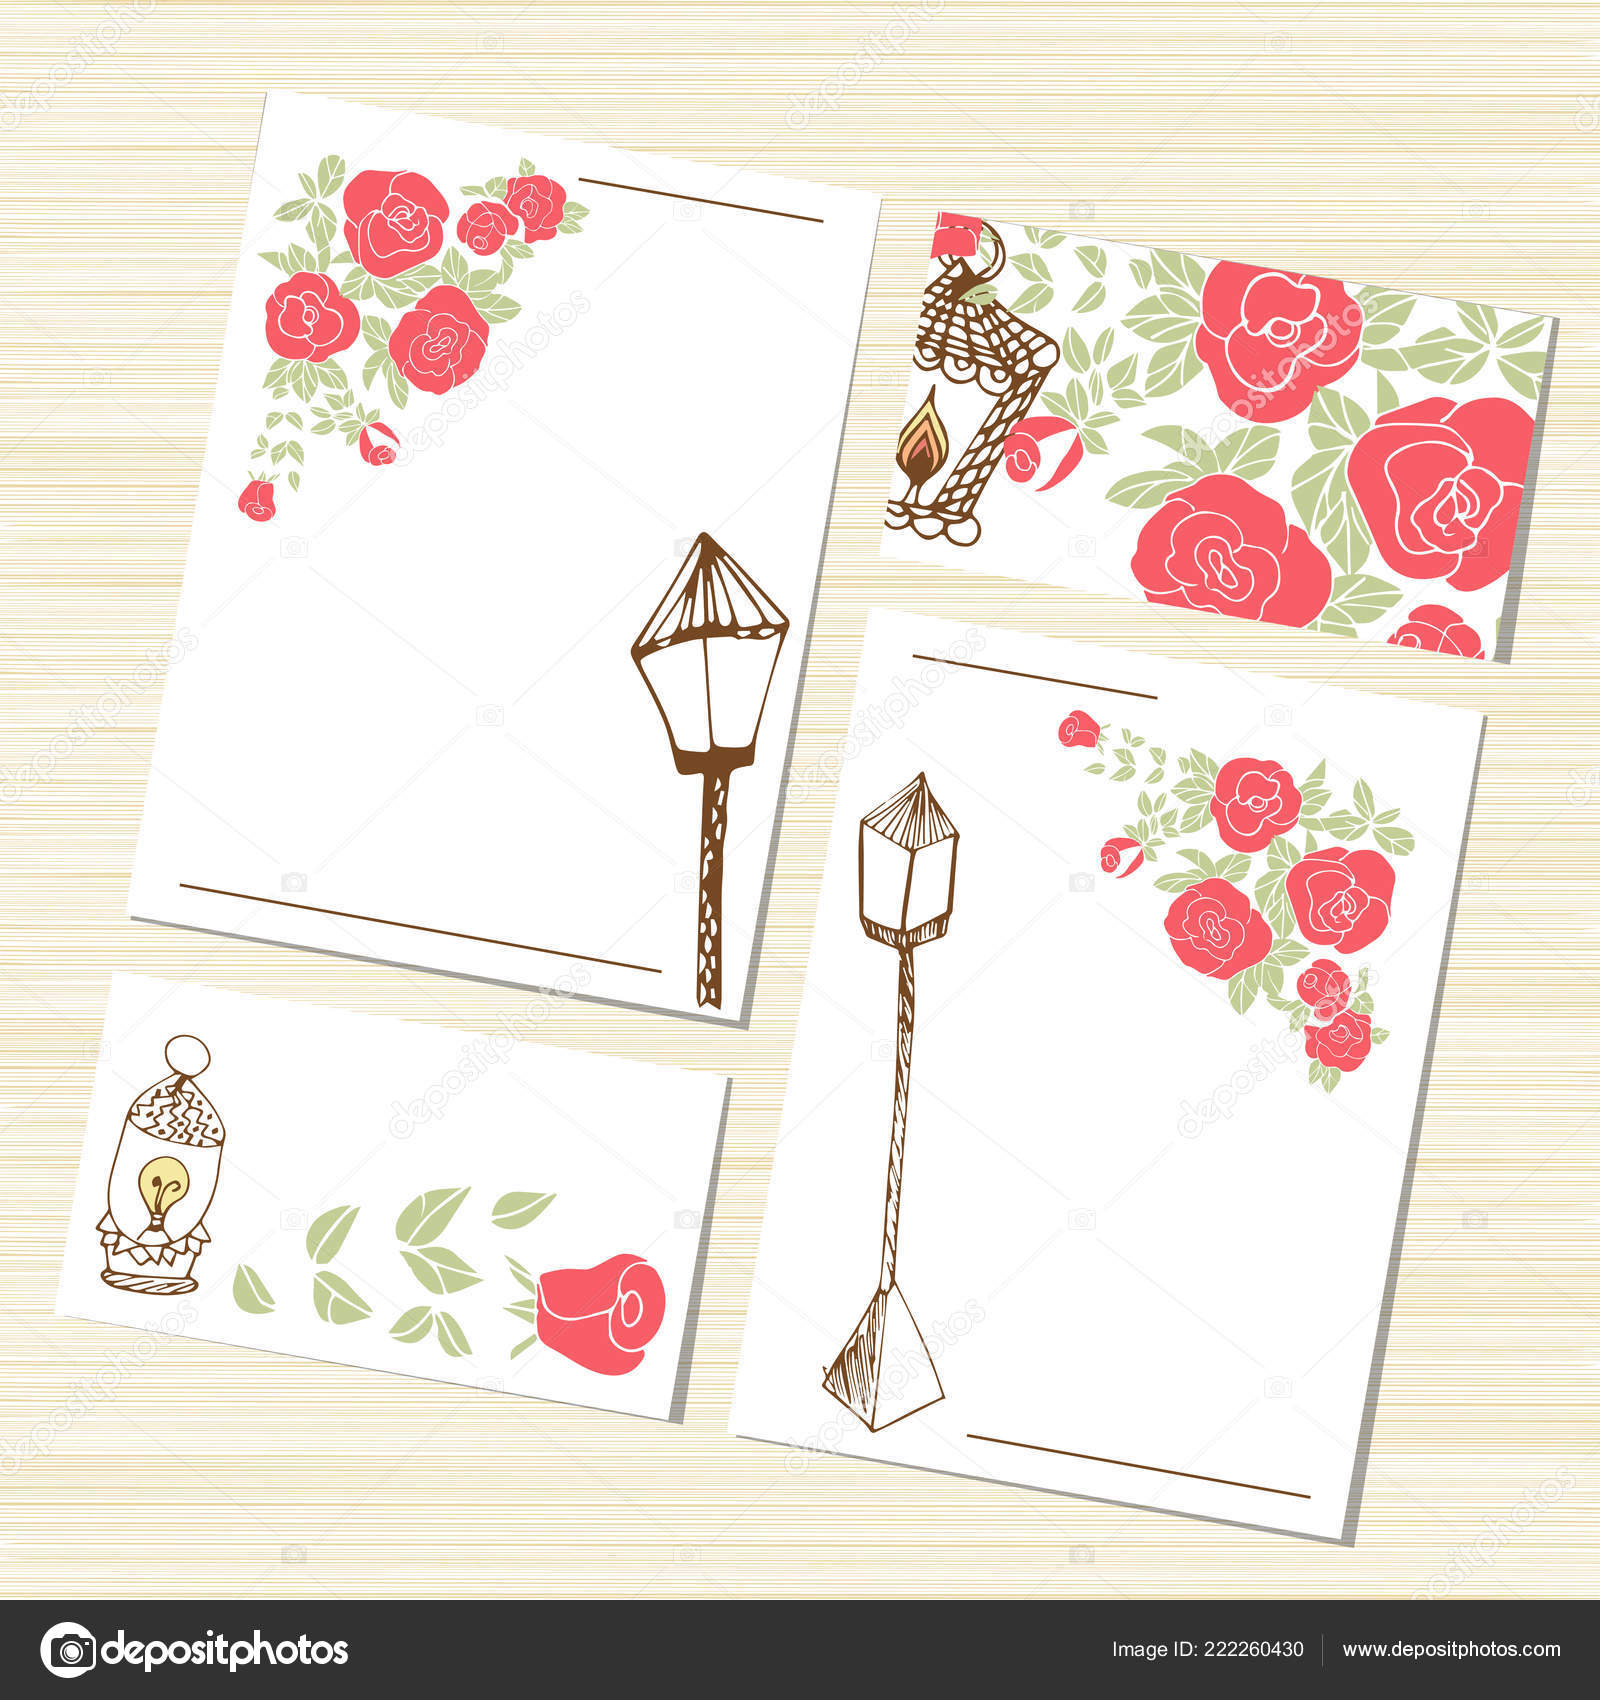 Romantic Set Template Flowers Roses And Fonar Mozhet Used As A